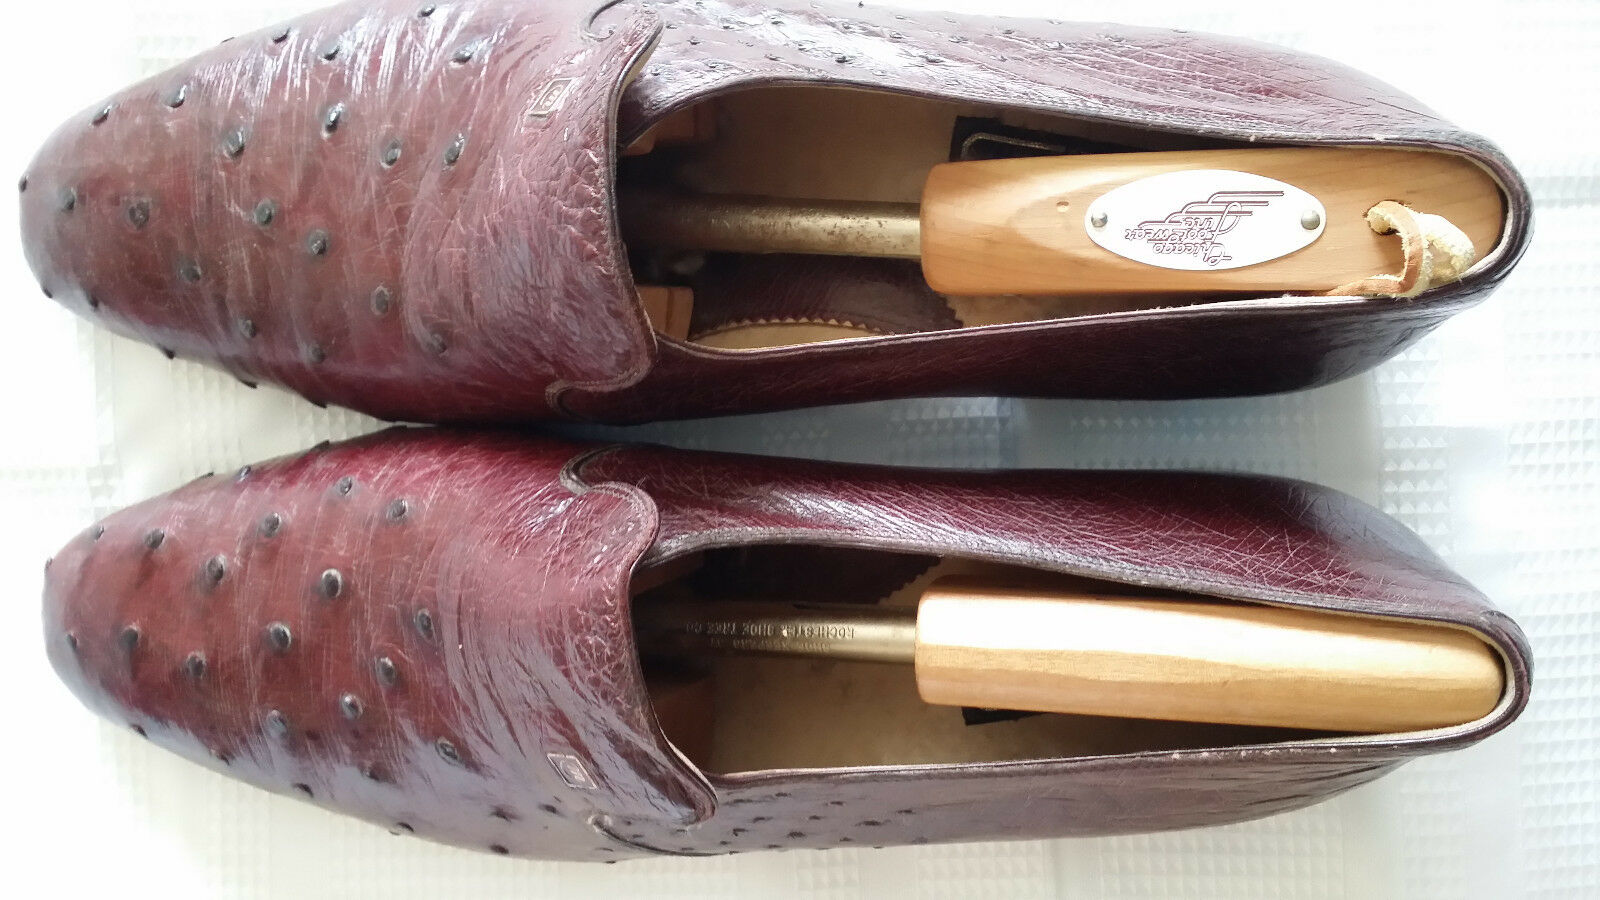 vendita all'ingrosso Mean's Burgundy colore Loafers Dimensione 13 13 13 by Maury made in  pre-owned   ti aspetto